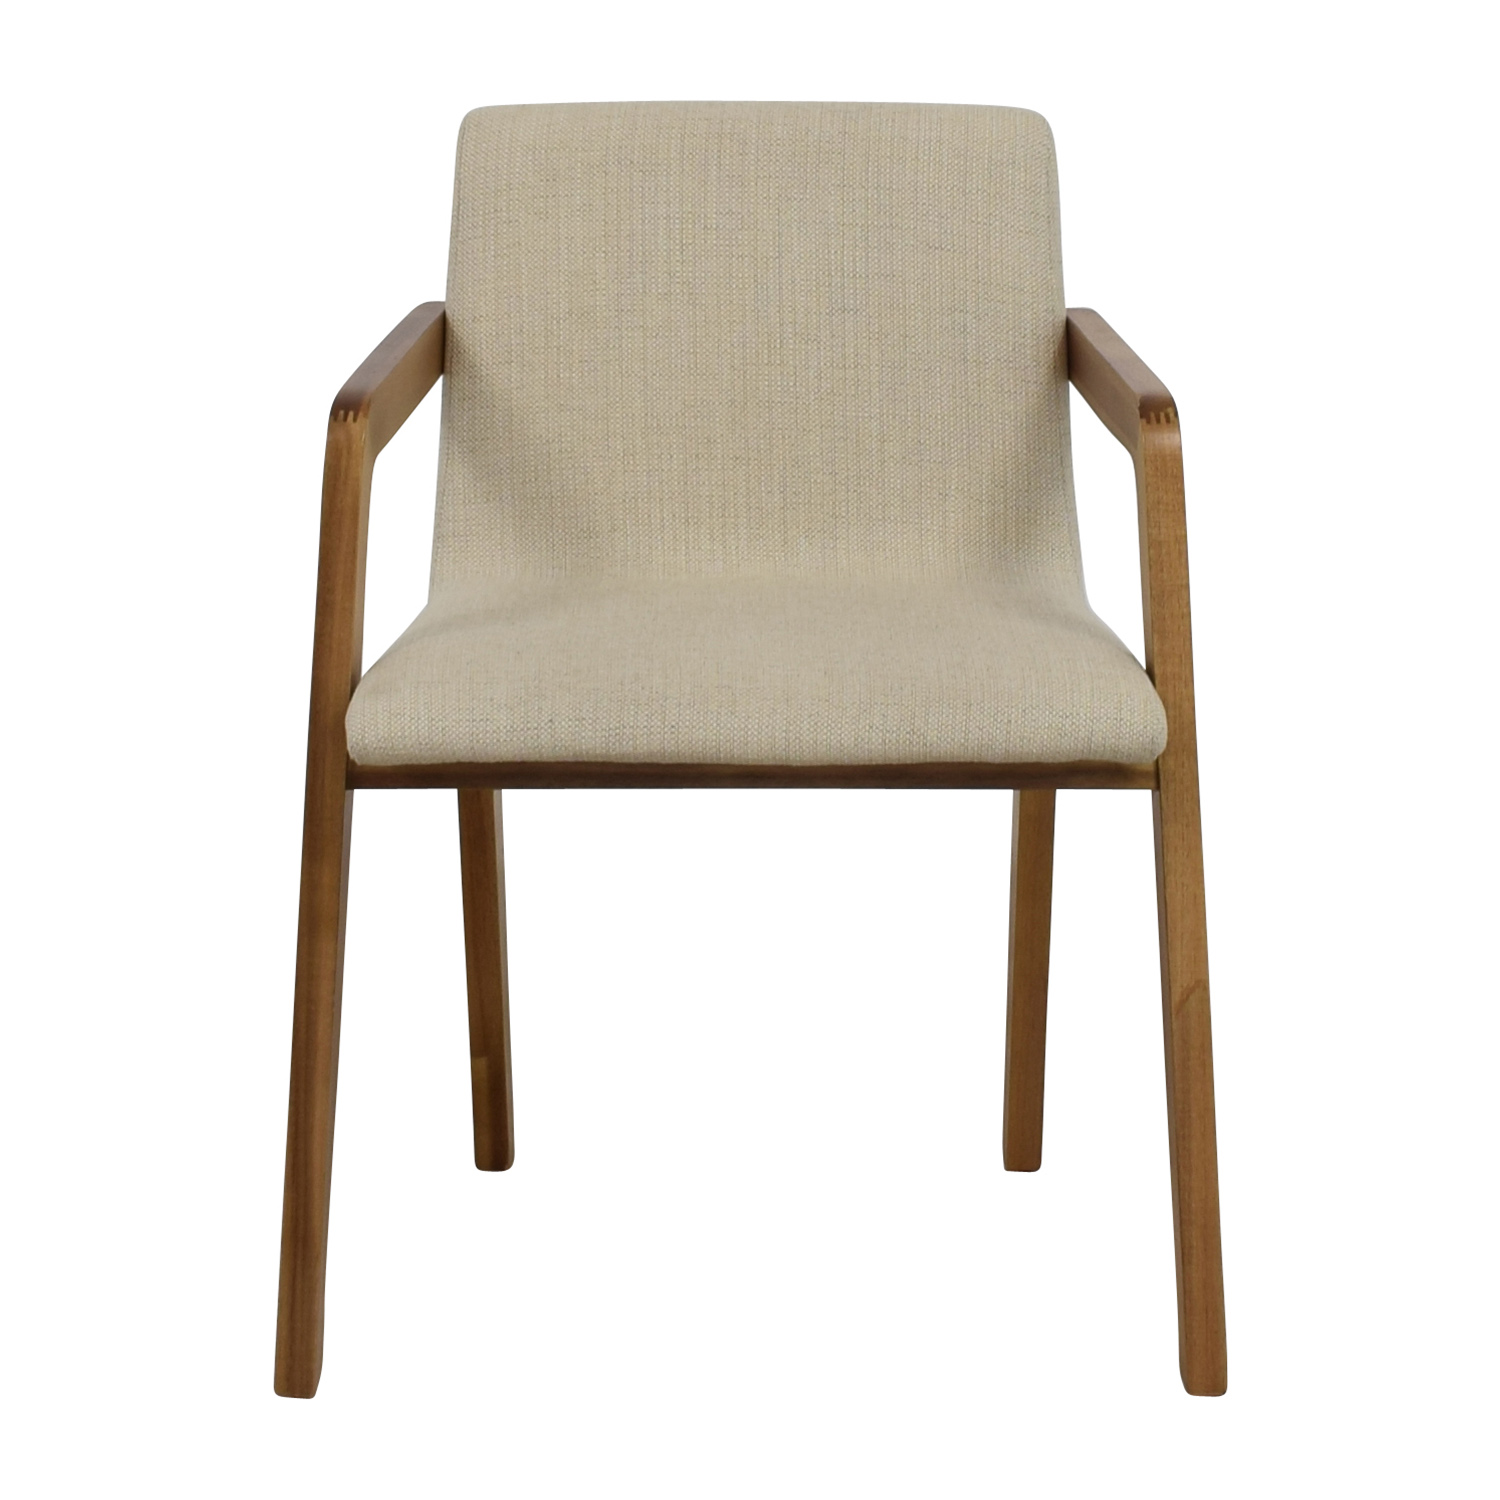 CB2 CB2 Natural Mid-Century Accent Chair Chairs